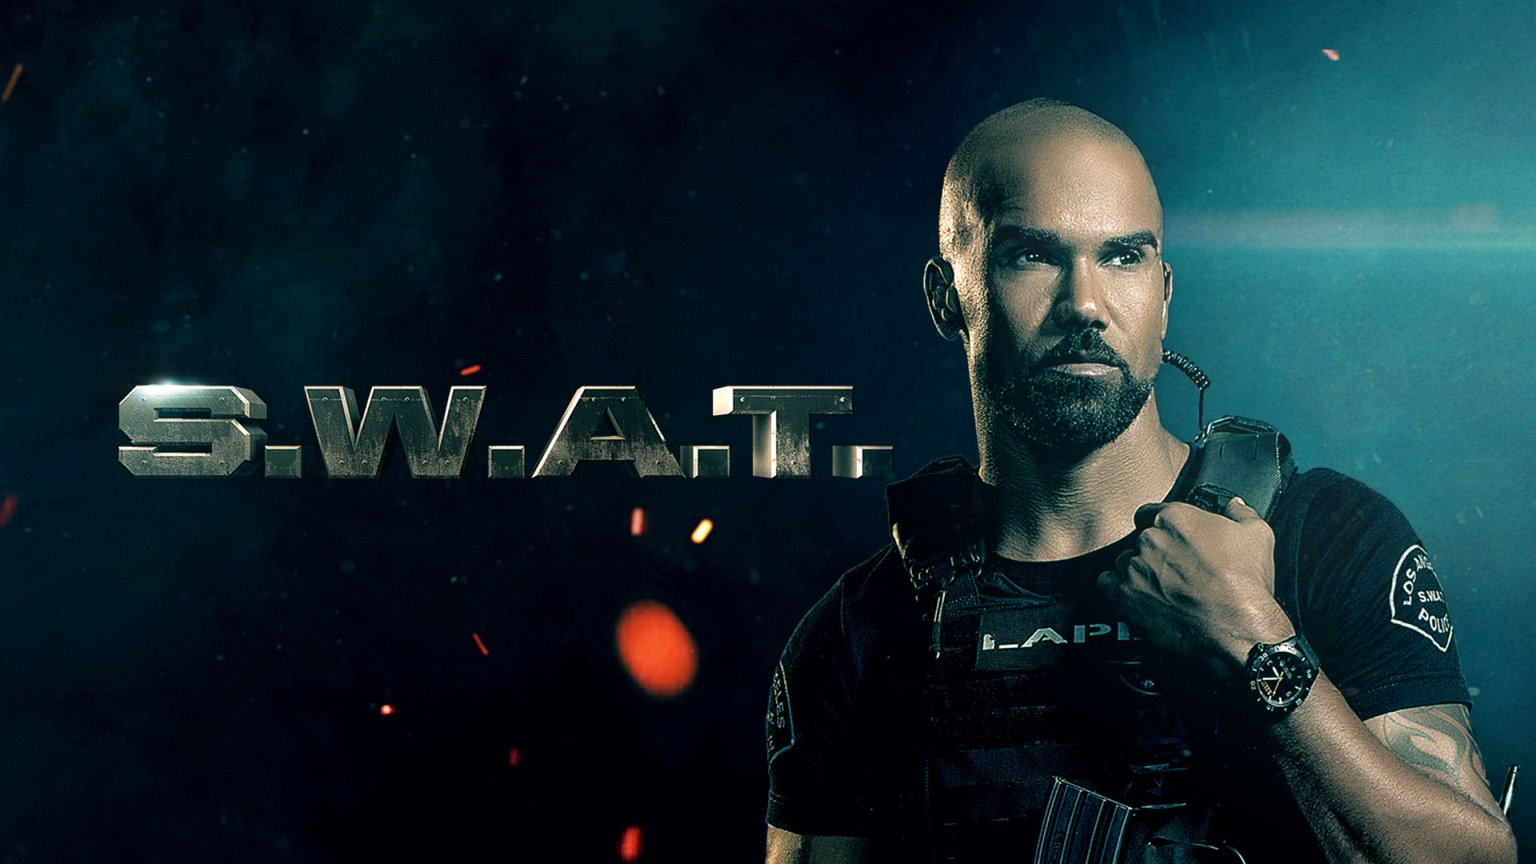 what time does S.W.A.T. come on